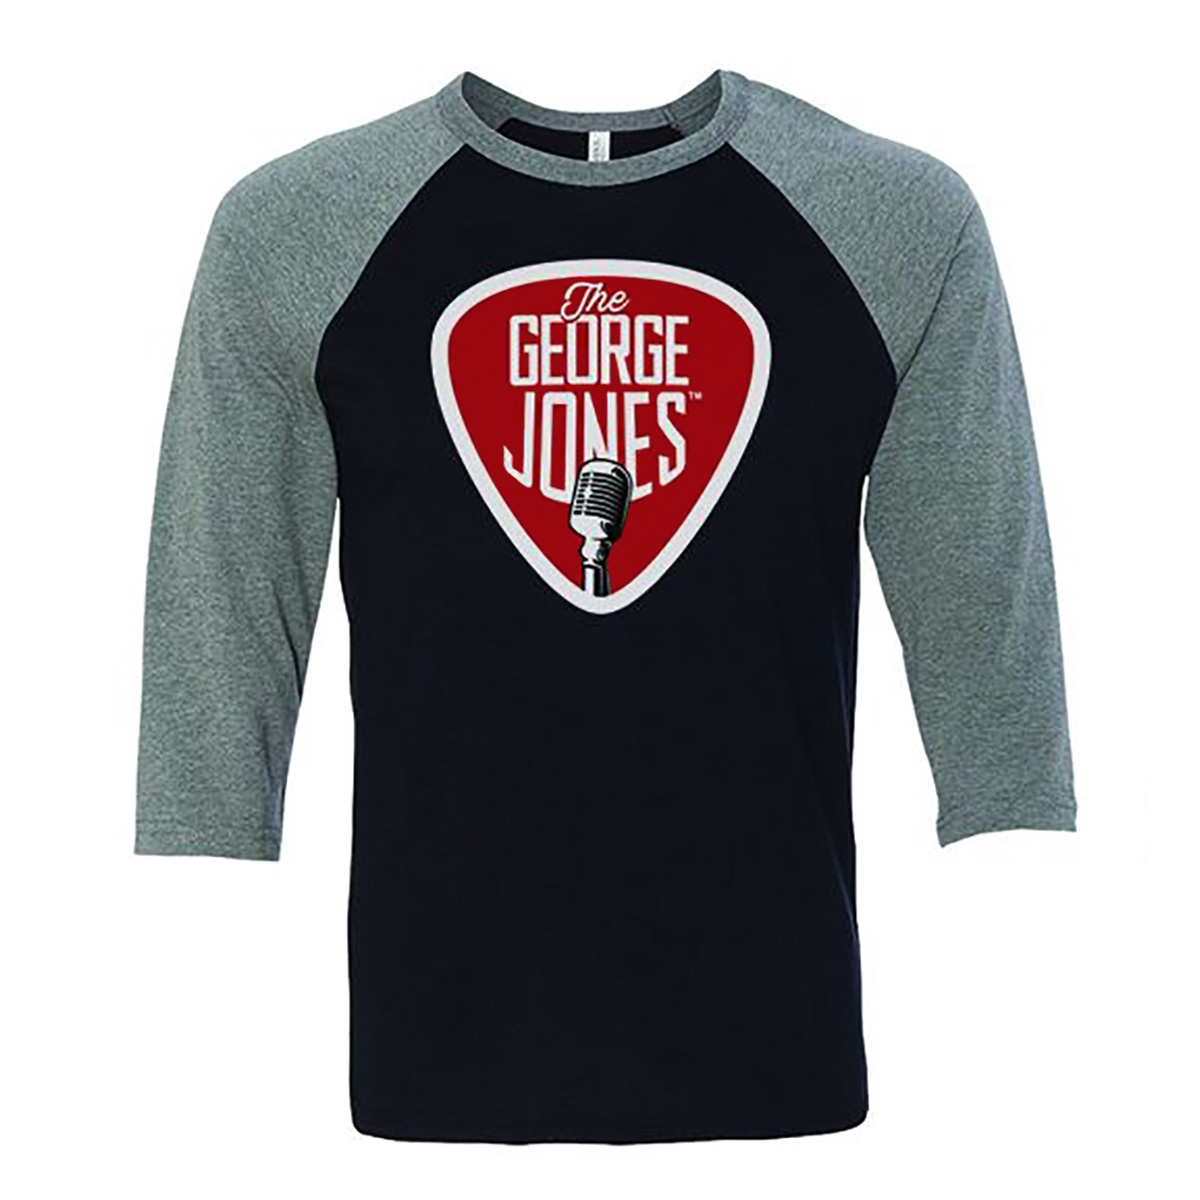 George Jones Baseball Shirt